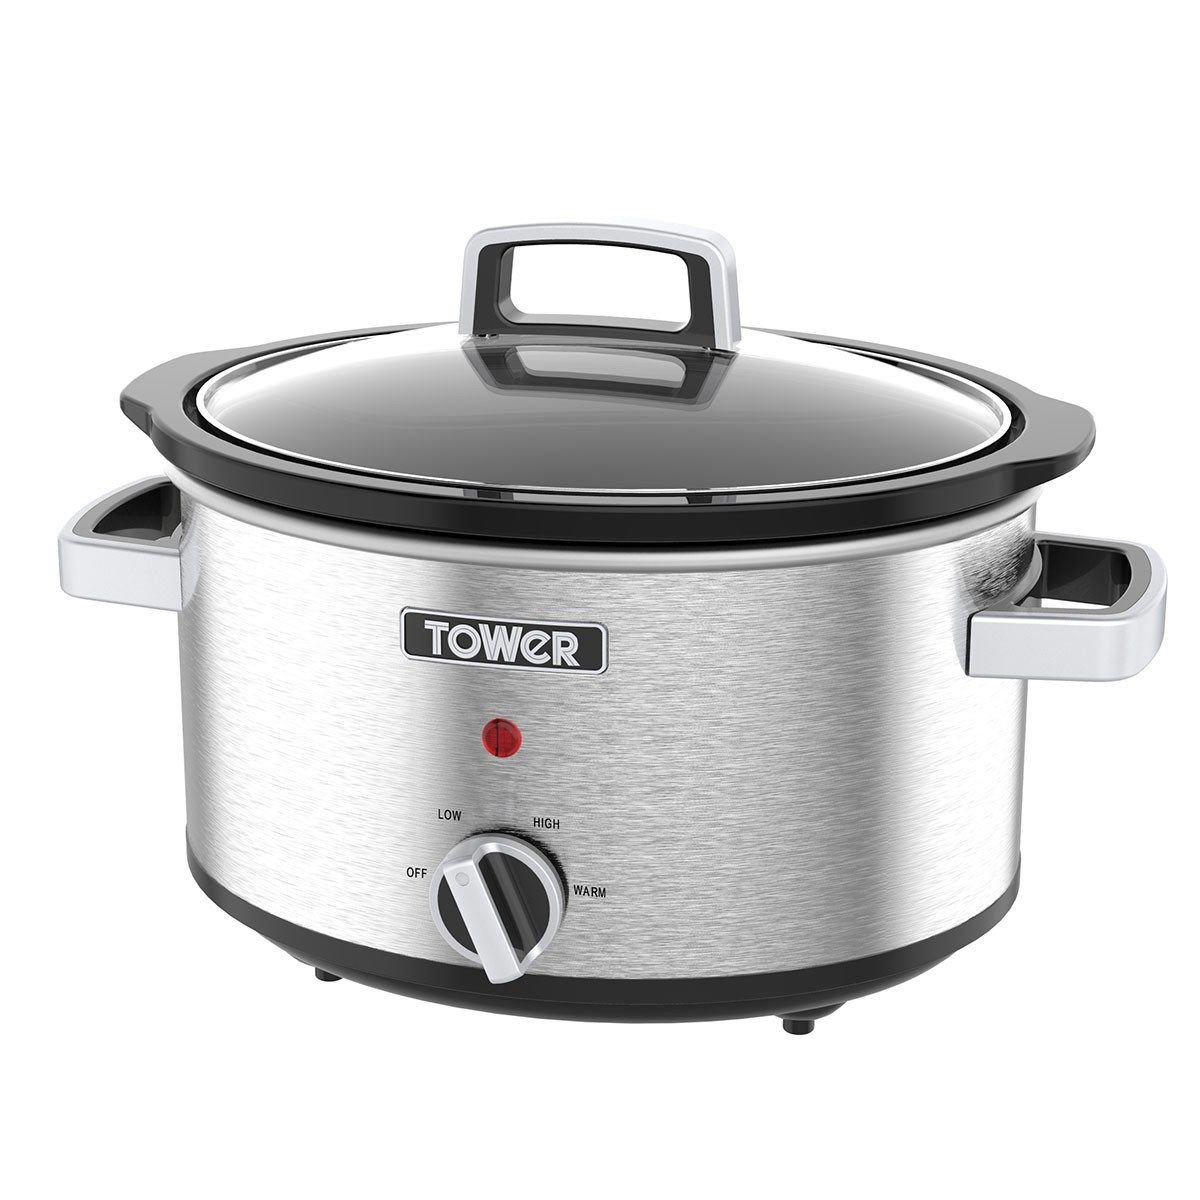 Tower T16018 3.5L Stainless Steel Slow Cooker for £14.99 on Robert Dyas (C&C)